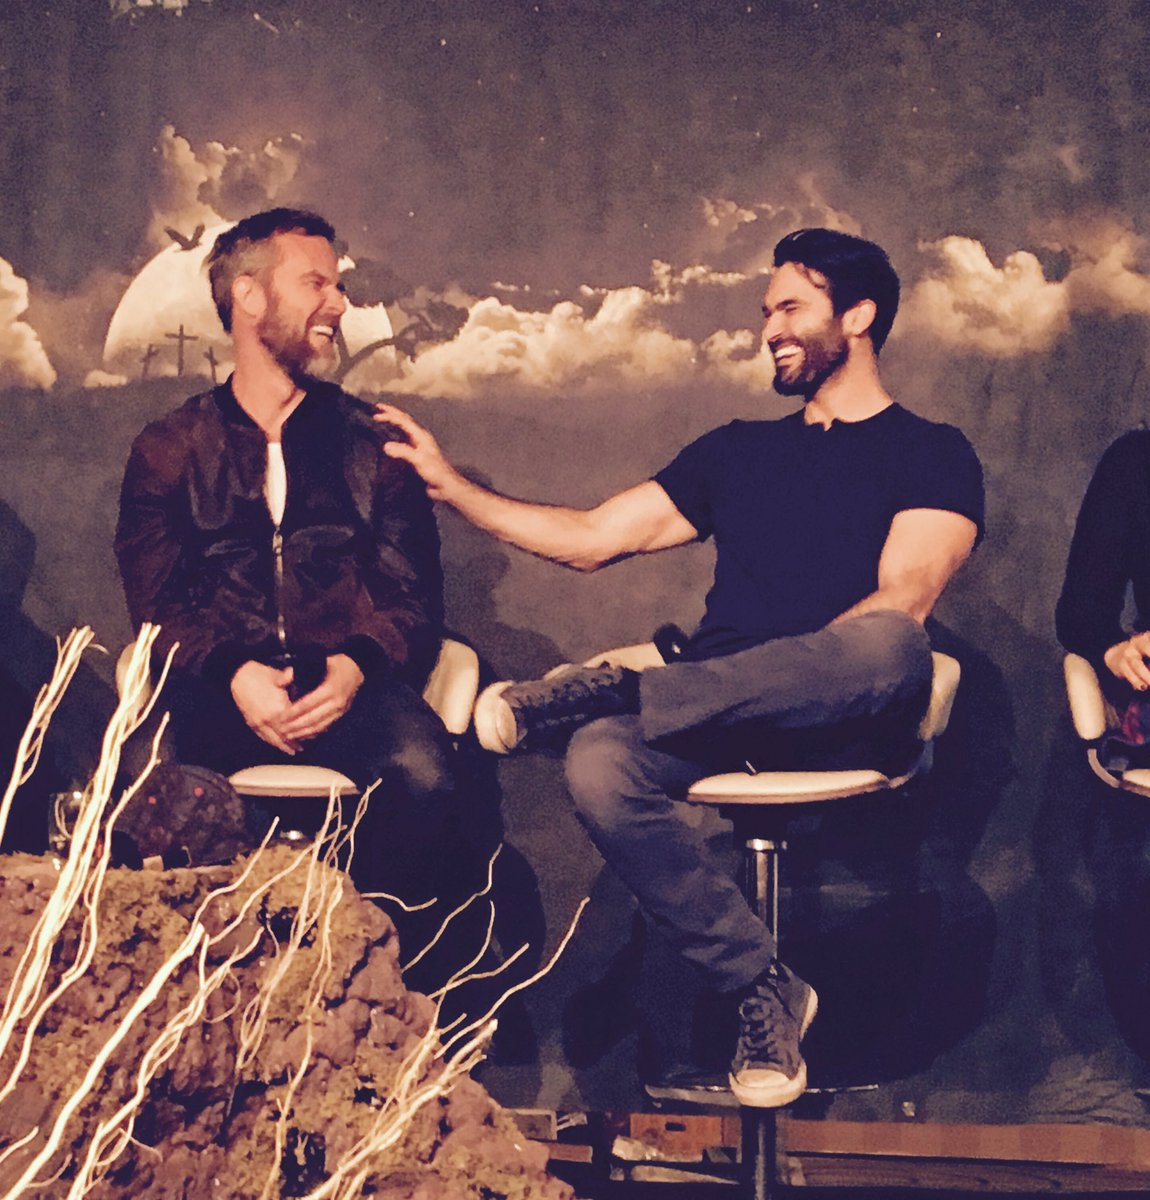 They're having so much fun! #NEMETONREVOLUTION #nemetonitacon @TylerL_Hoechlin @iamjrbourne https://t.co/K6YFZj9kKW